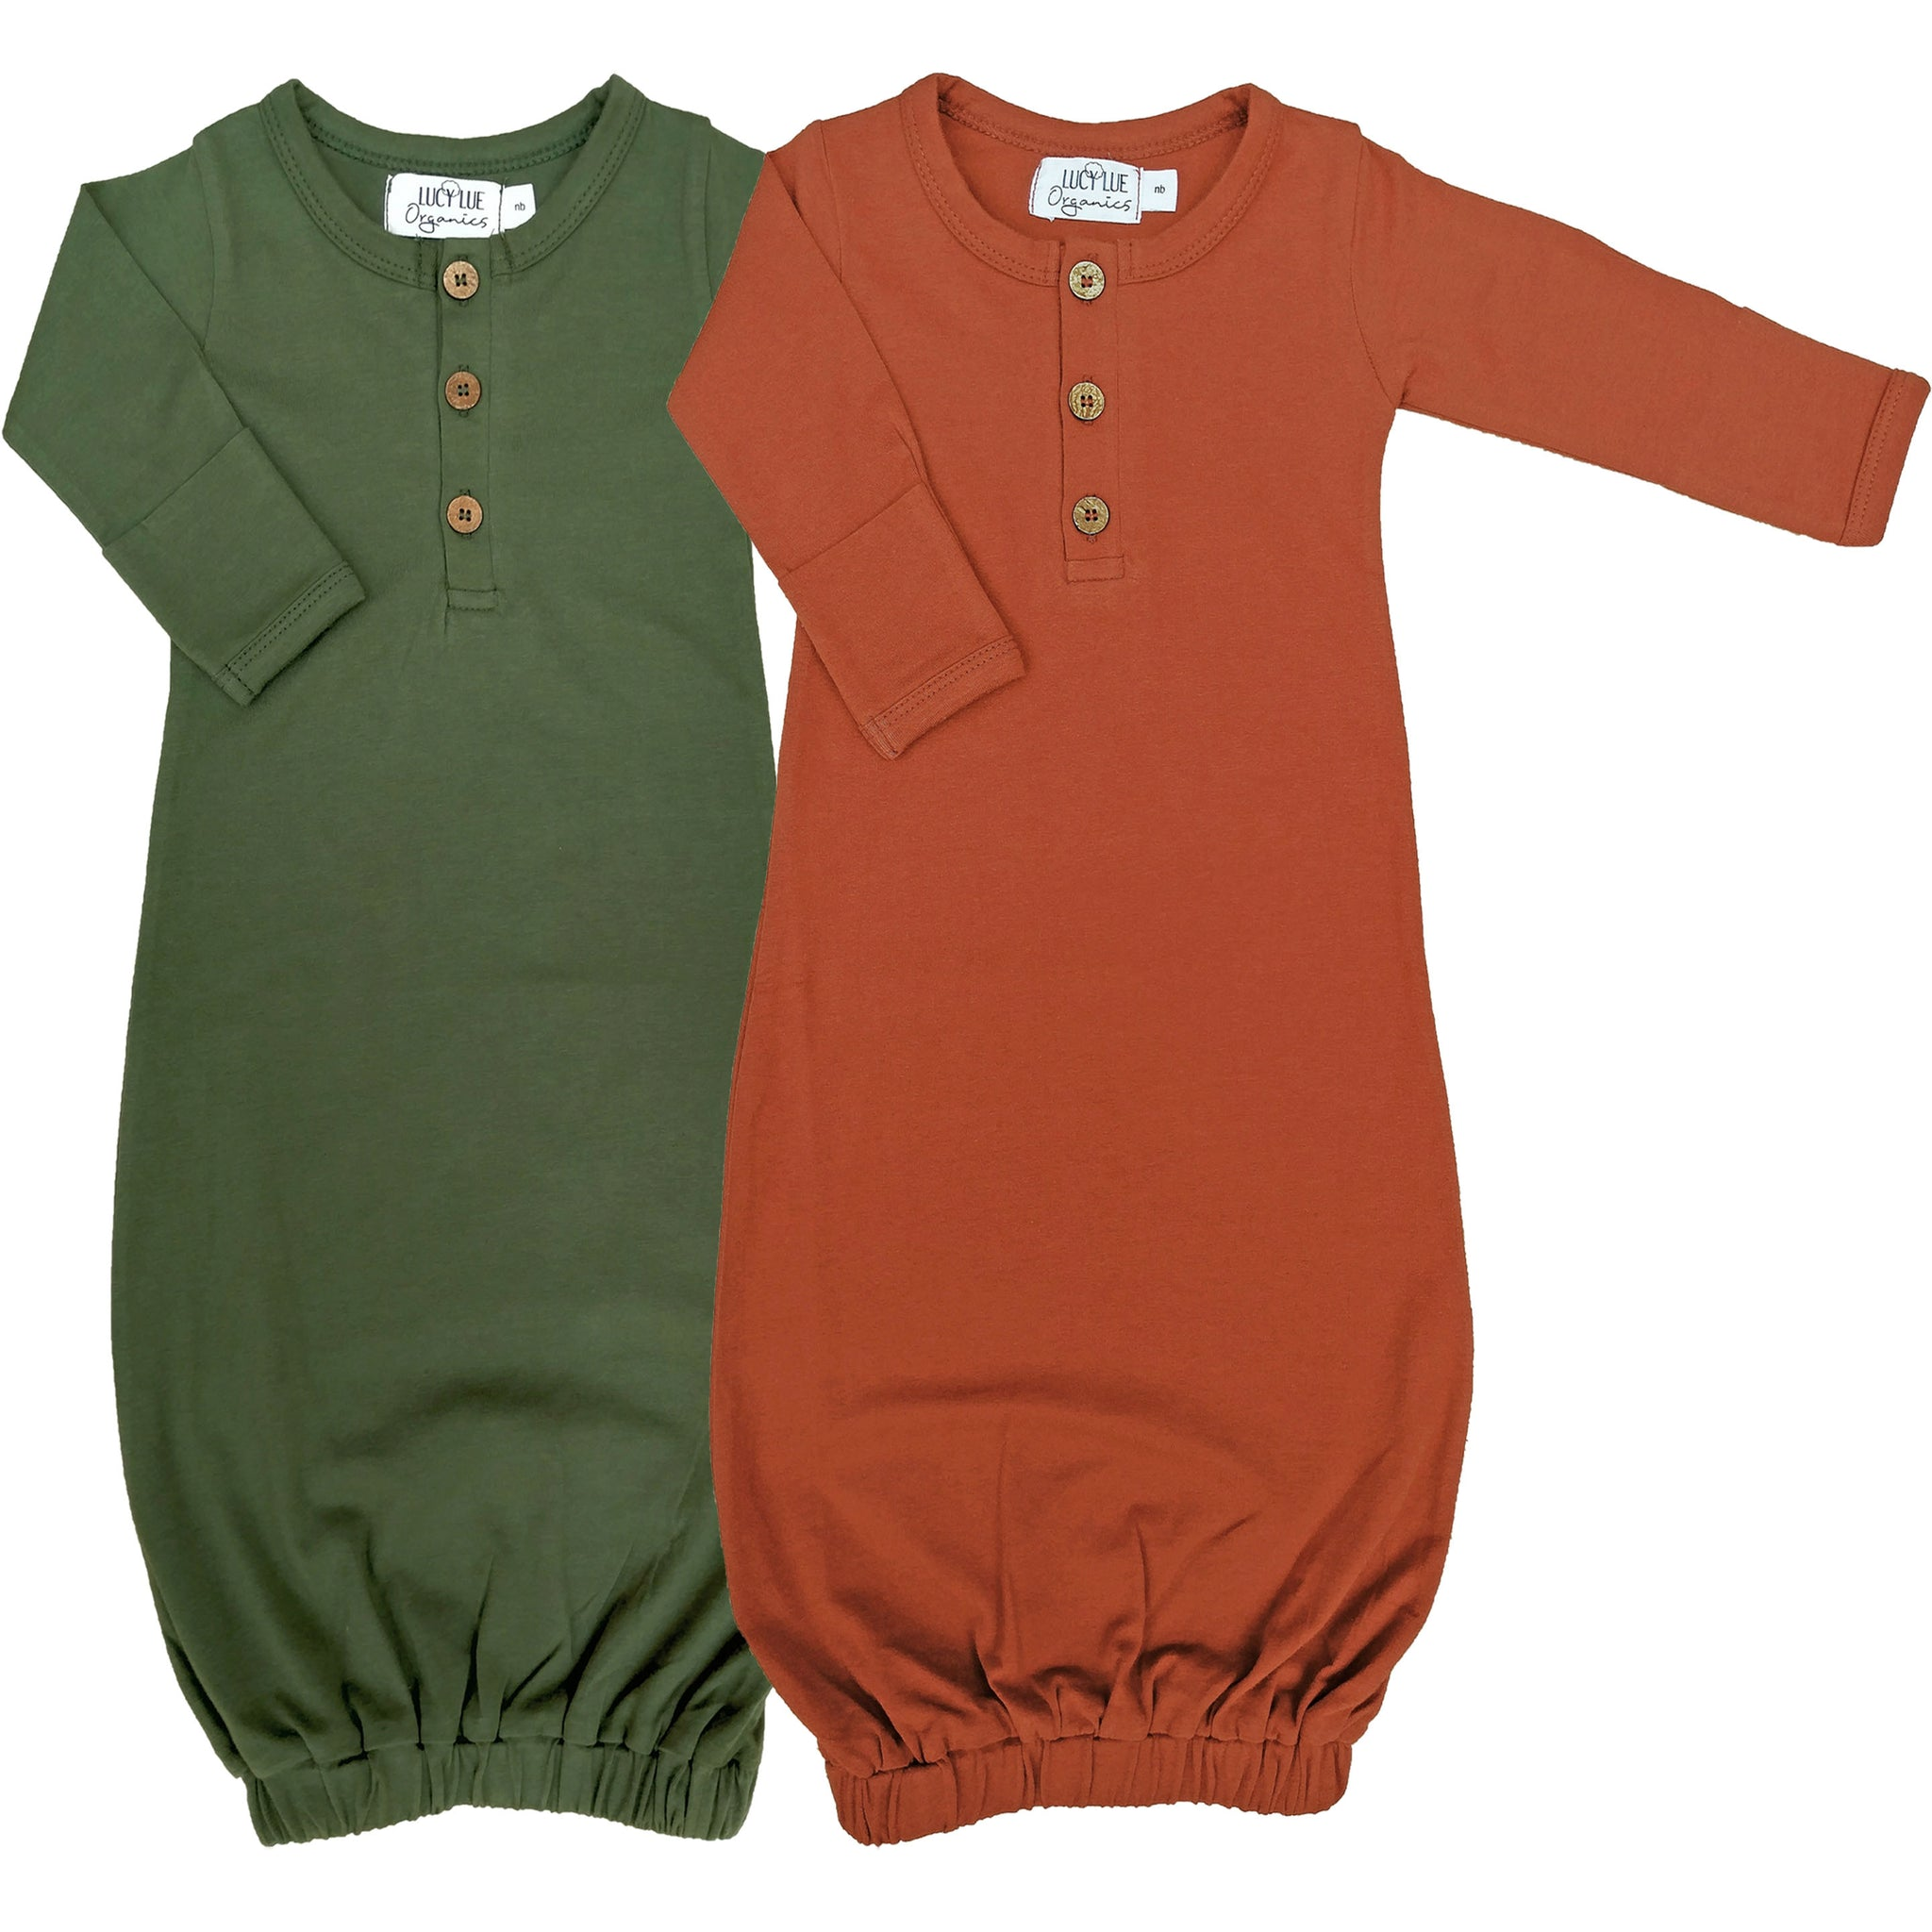 Organic Knotted Baby Gown Lucy Lue Organics 0-3m Olive Green